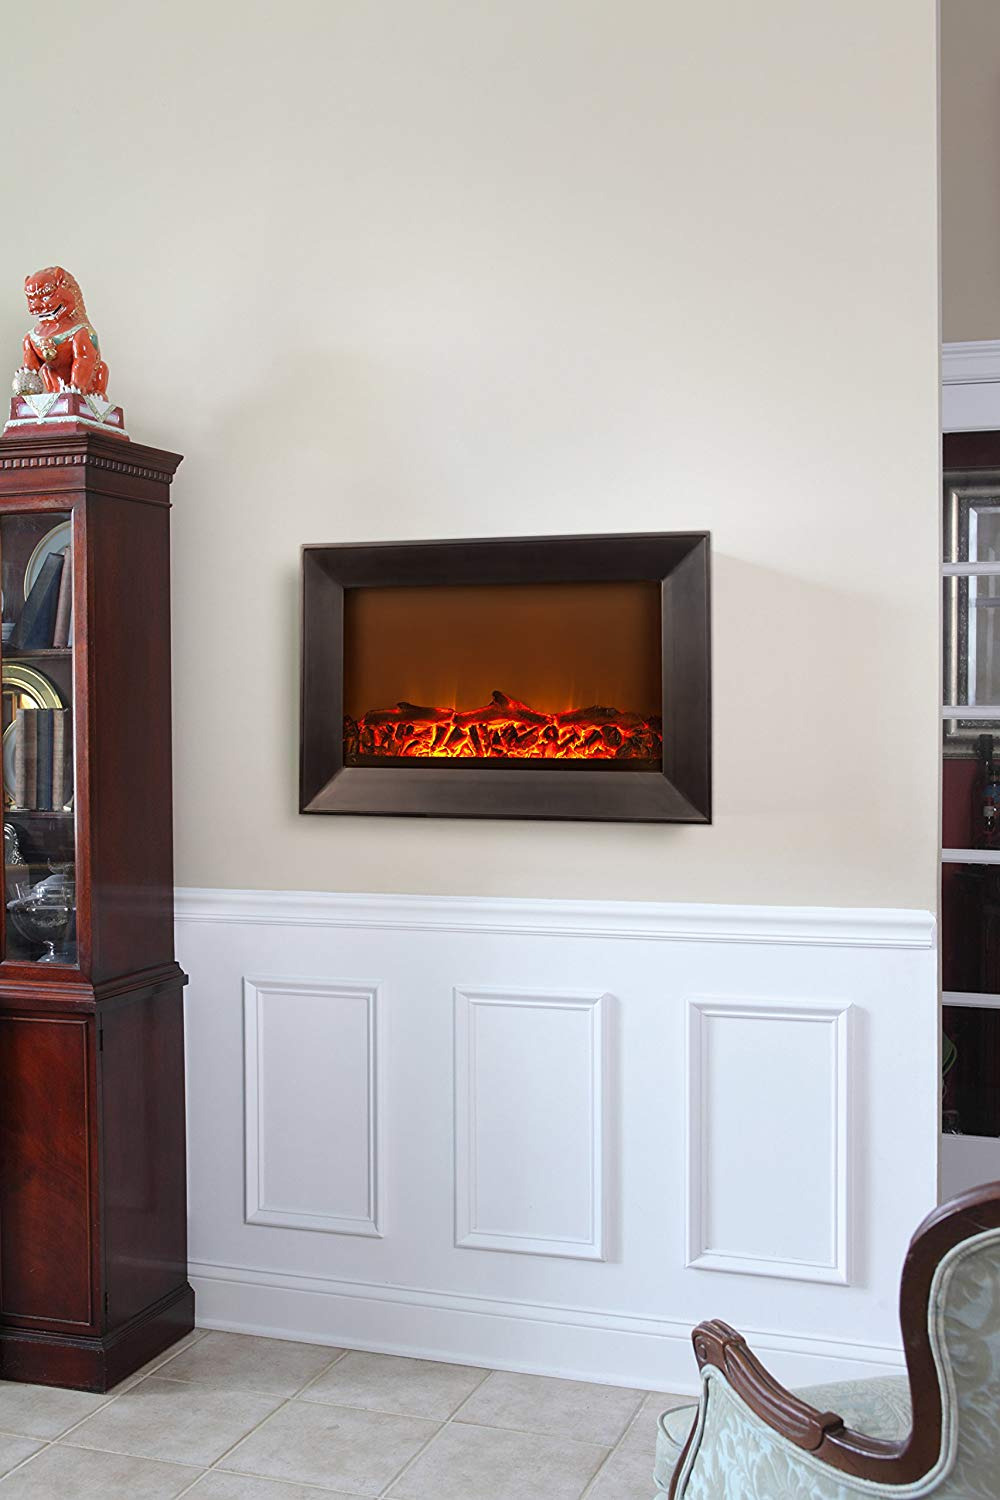 ParkSideAve wall mounted electric fireplace fire sense wood frame wall mount electric fireplace 4